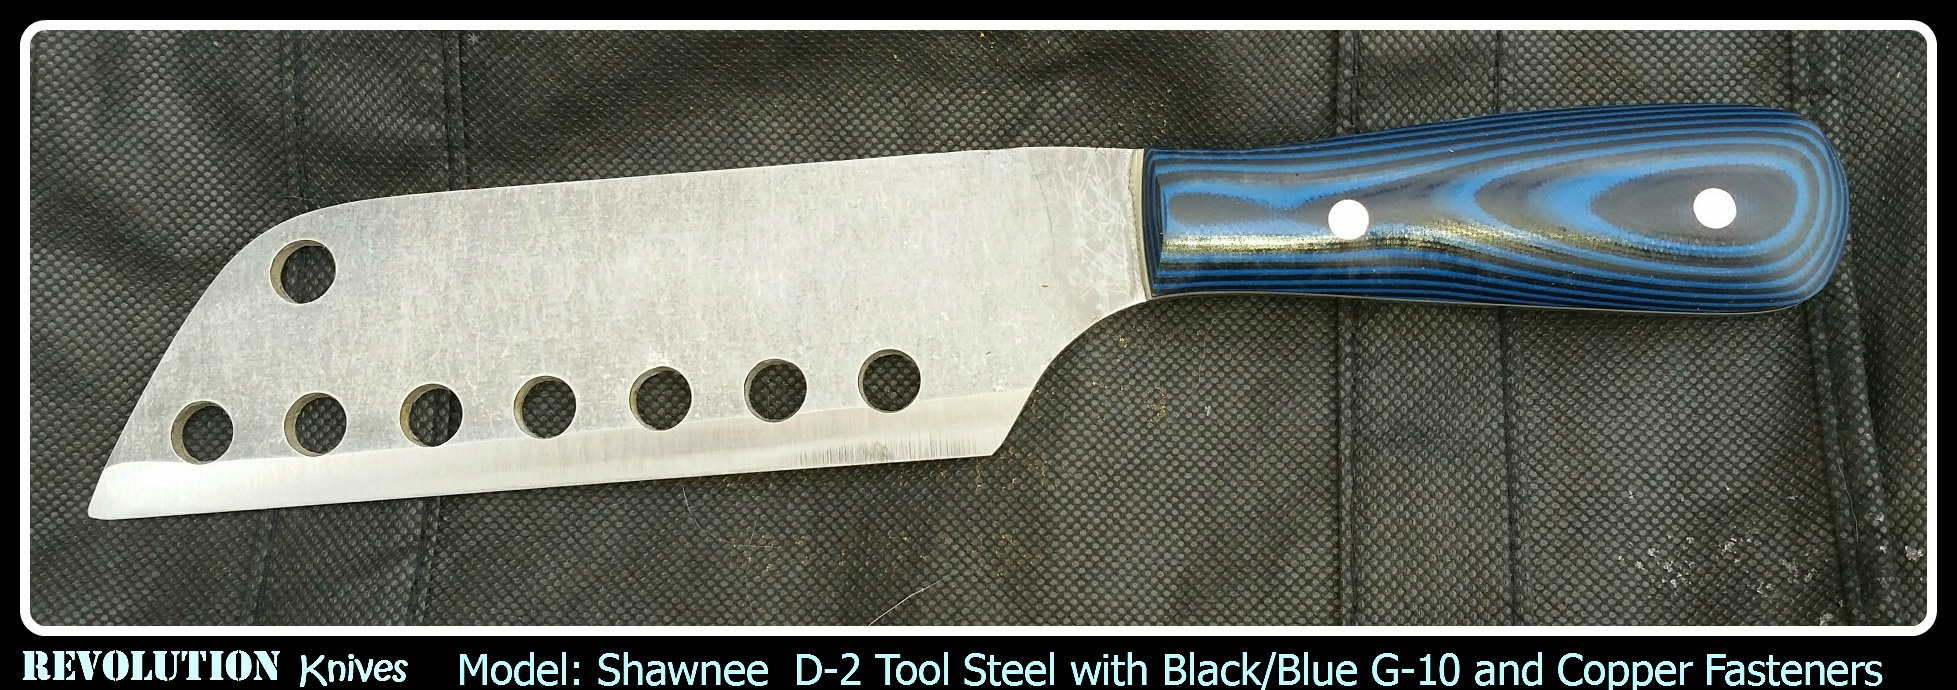 Shawnee D-2 Tool Steel with Black/Blue G-10 and Copper Fasteners